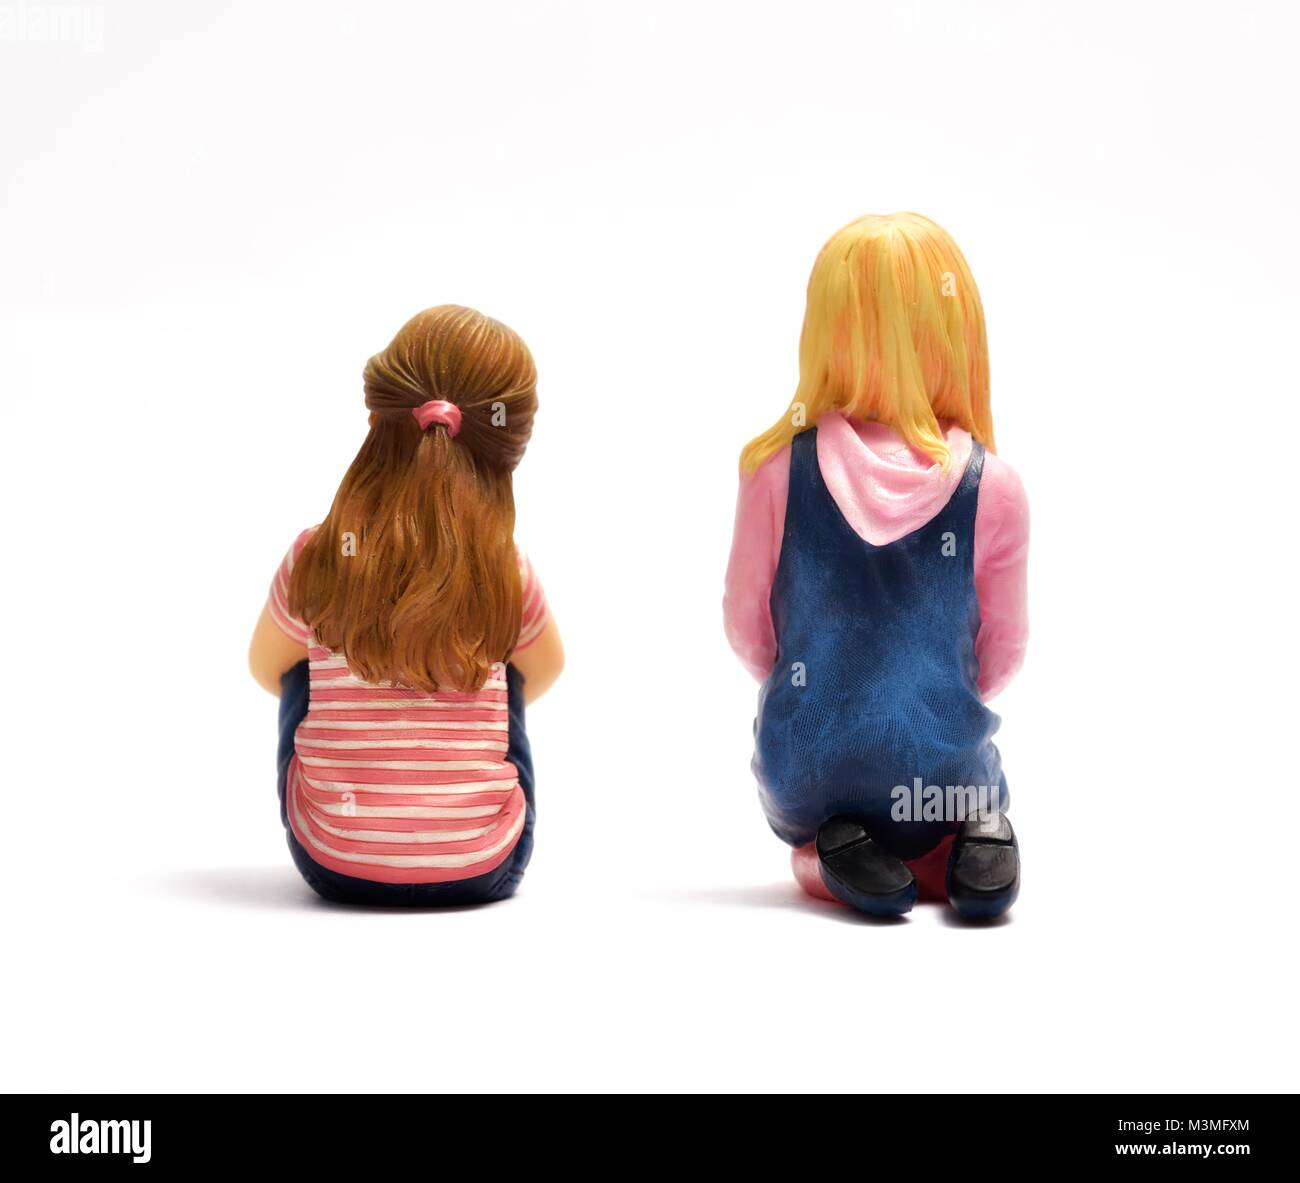 Two miniature figurine girls facing forward - Stock Image